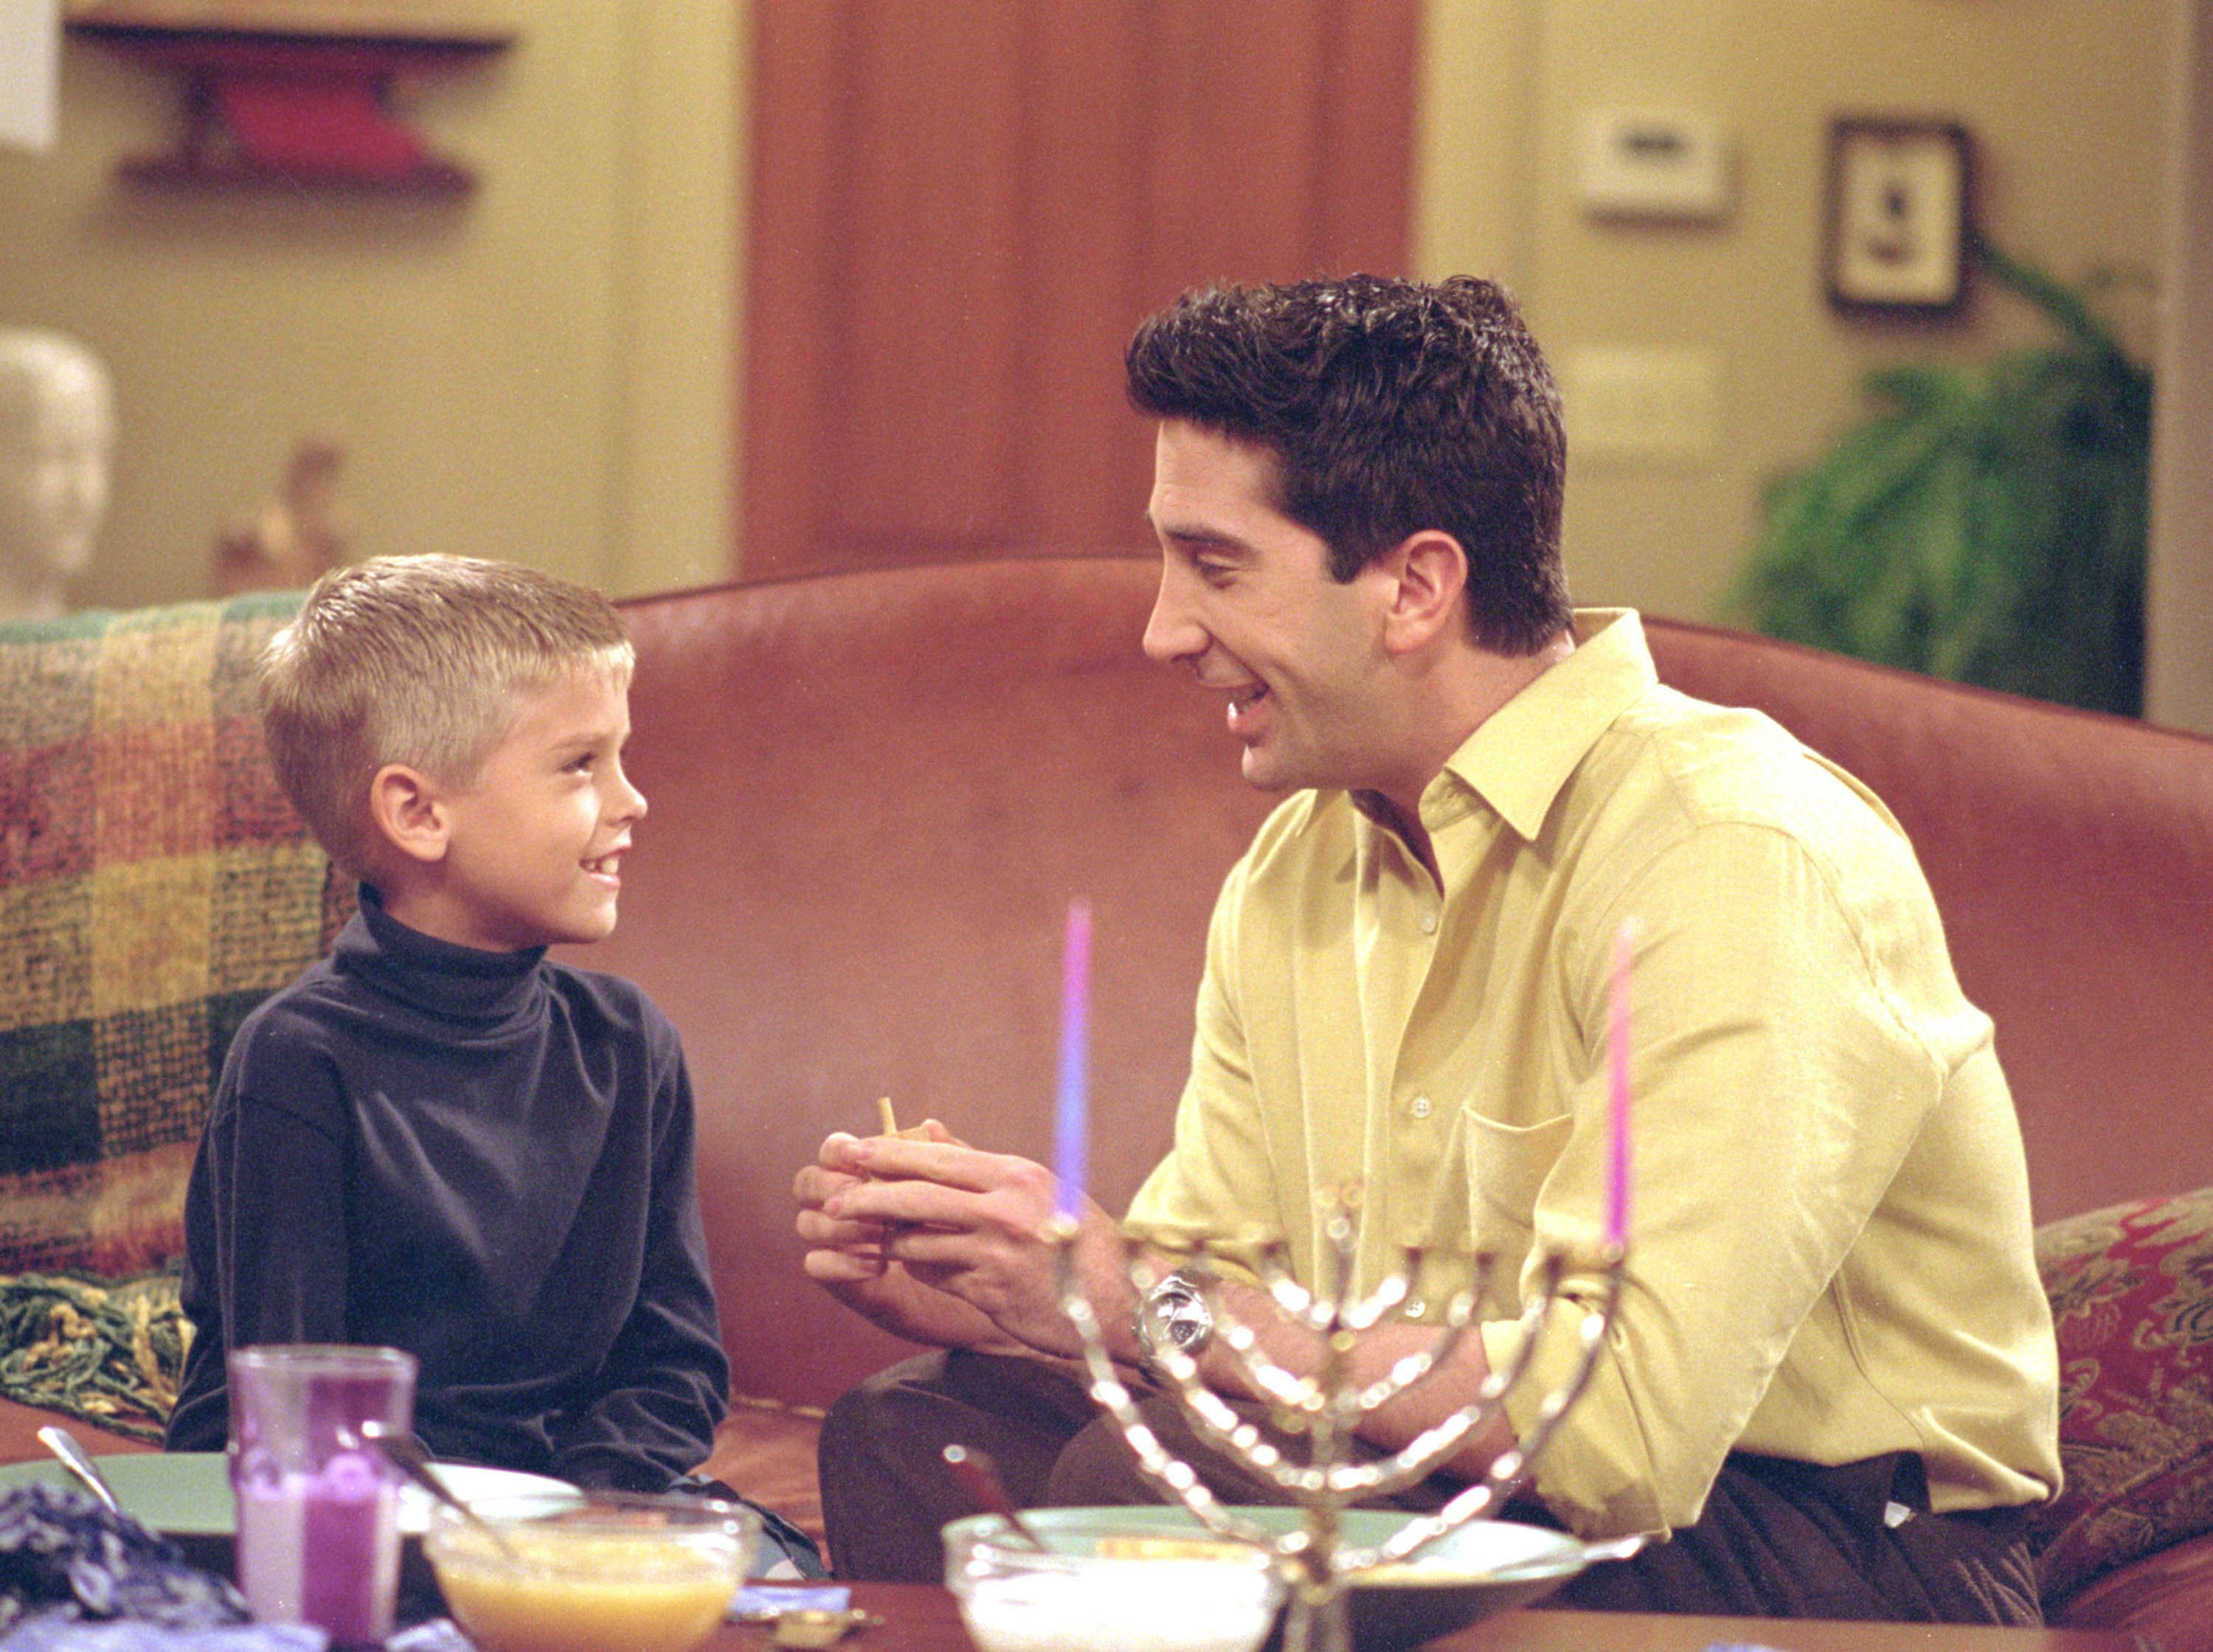 385848 23: Actors Cole Mitchell Sprouse (Big Daddy) as Ben and David Schwimmer as Ross Geller star in NBC's comedy series 'Friends' episode 'The One with the Holiday Armadillo.' Ross has Ben for the holidays and decides that this season, they will celebrate Chanukah instead of Christmas. (Photo by Warner Bros. Television)